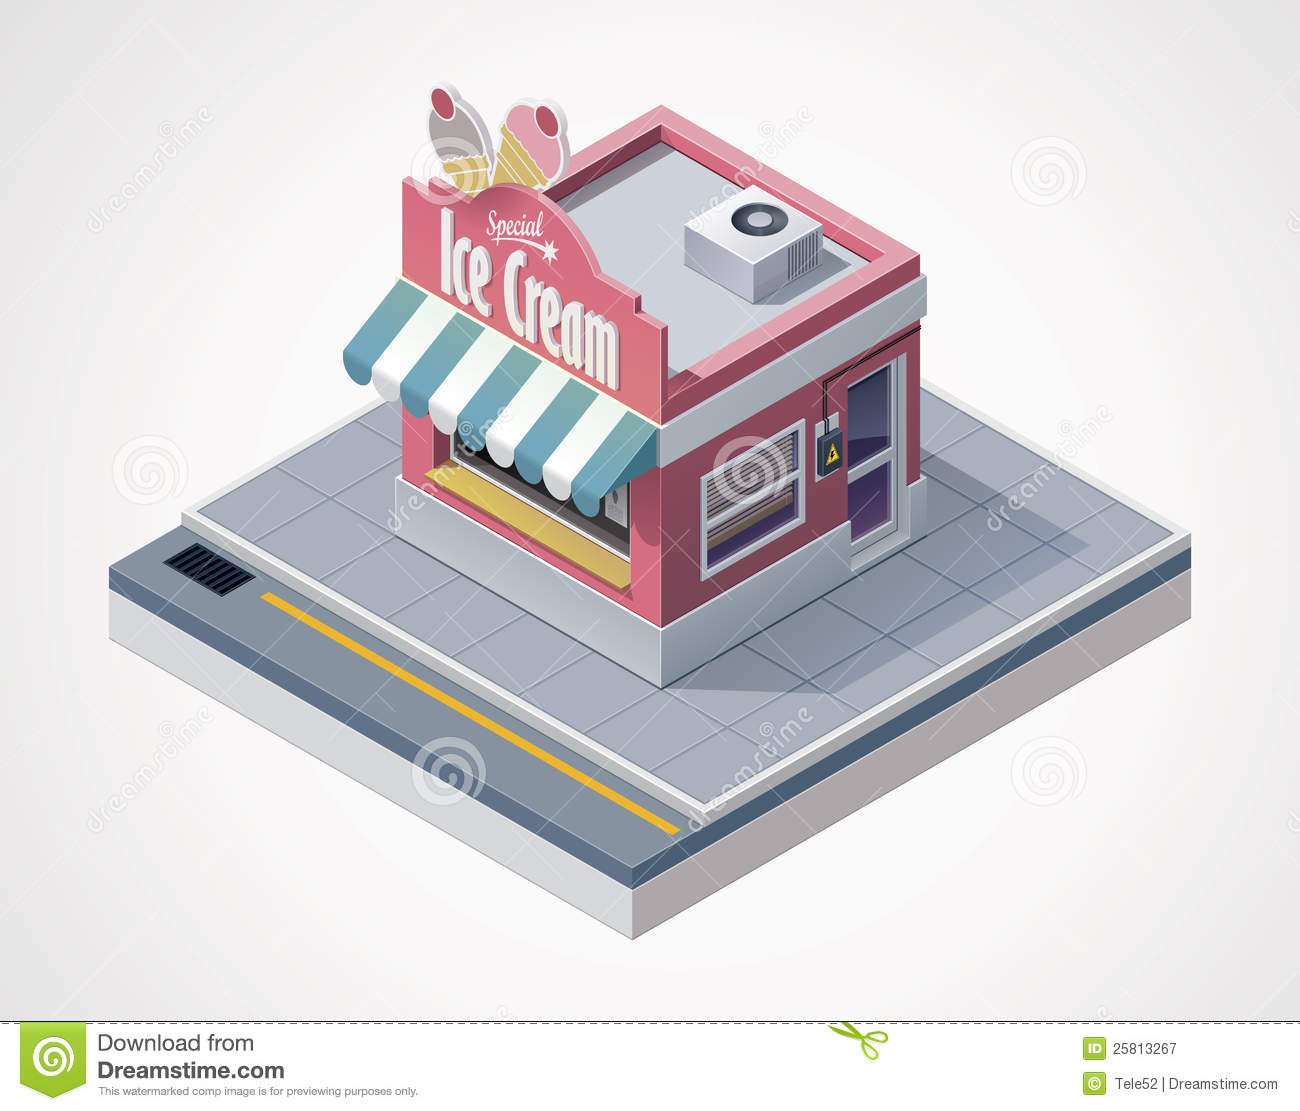 Vector Isometric Ice Cream Store Royalty Free Stock Photography Image 25813267